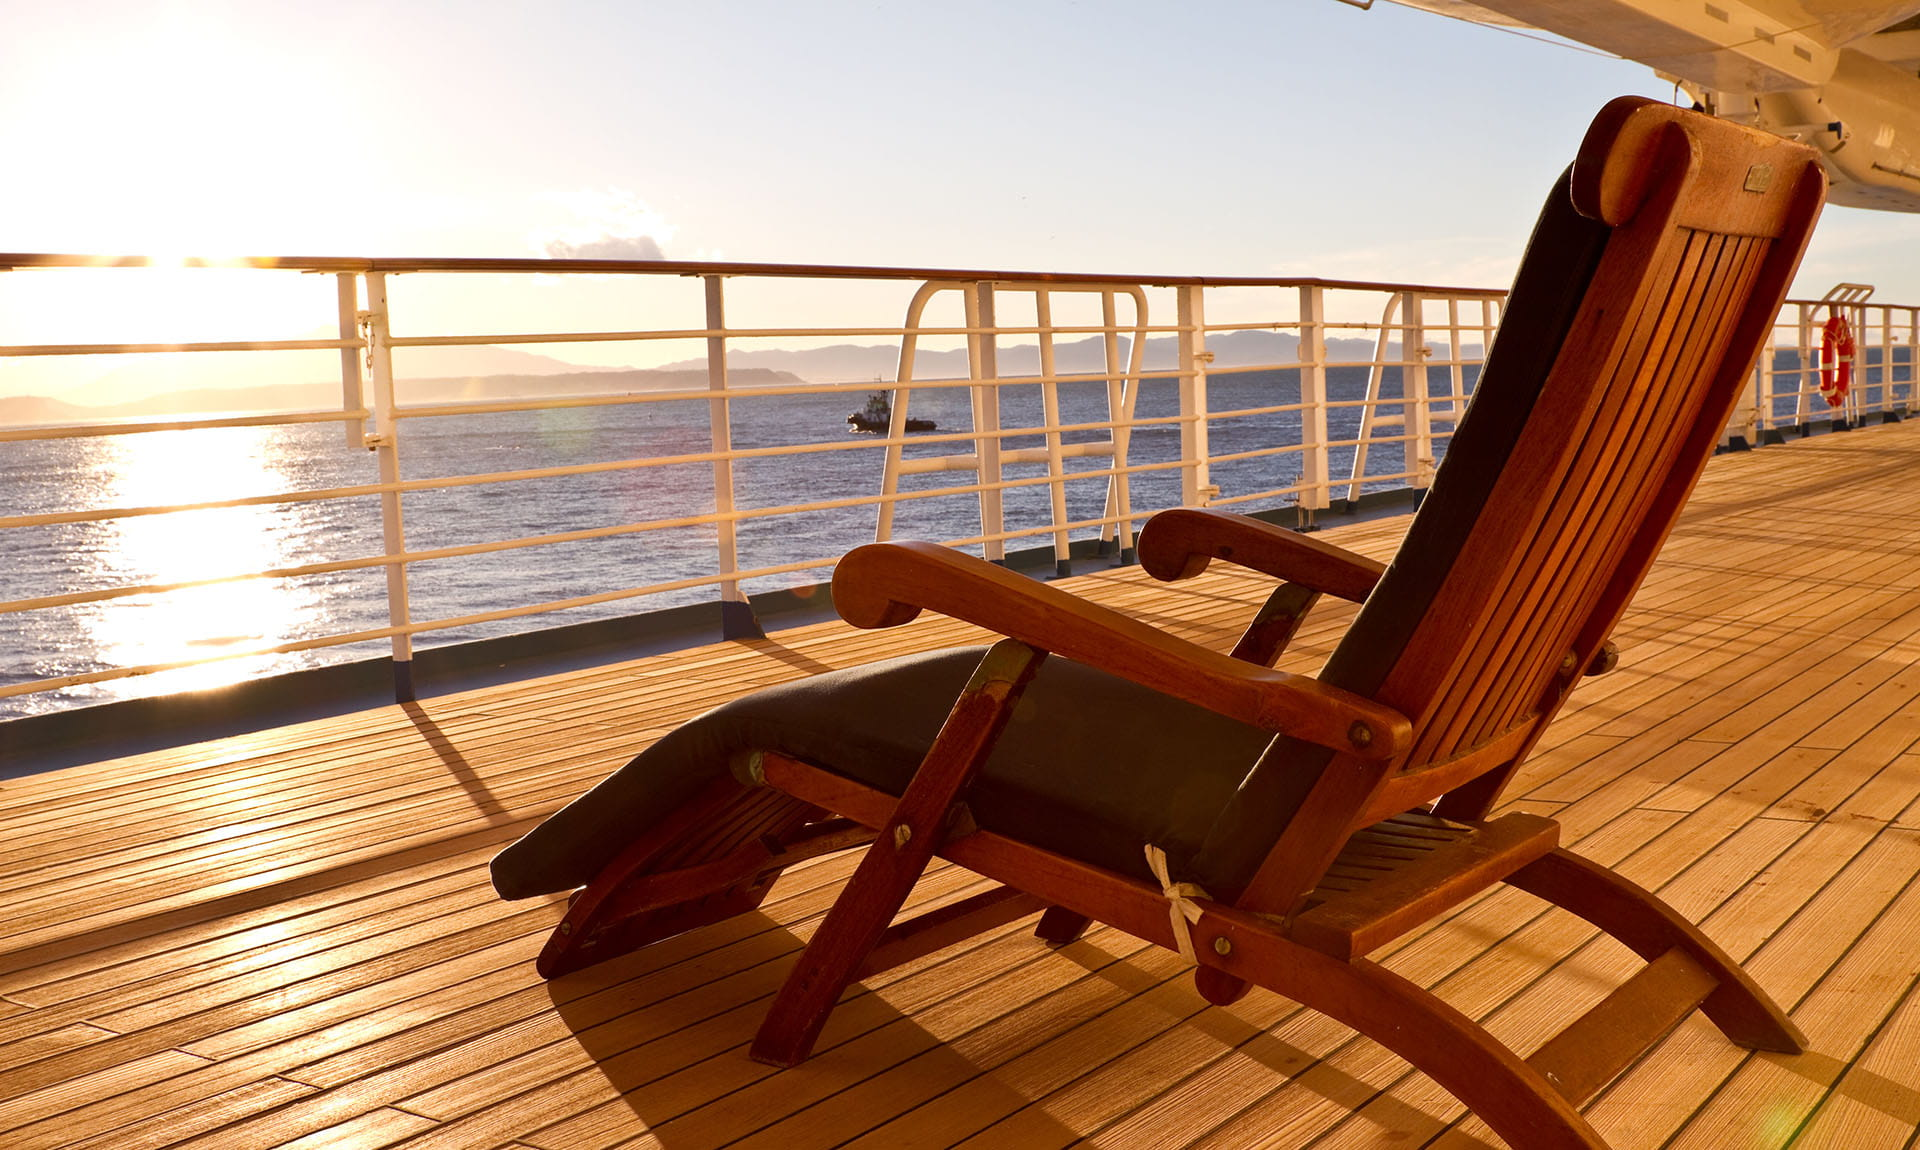 Chair on boat deck